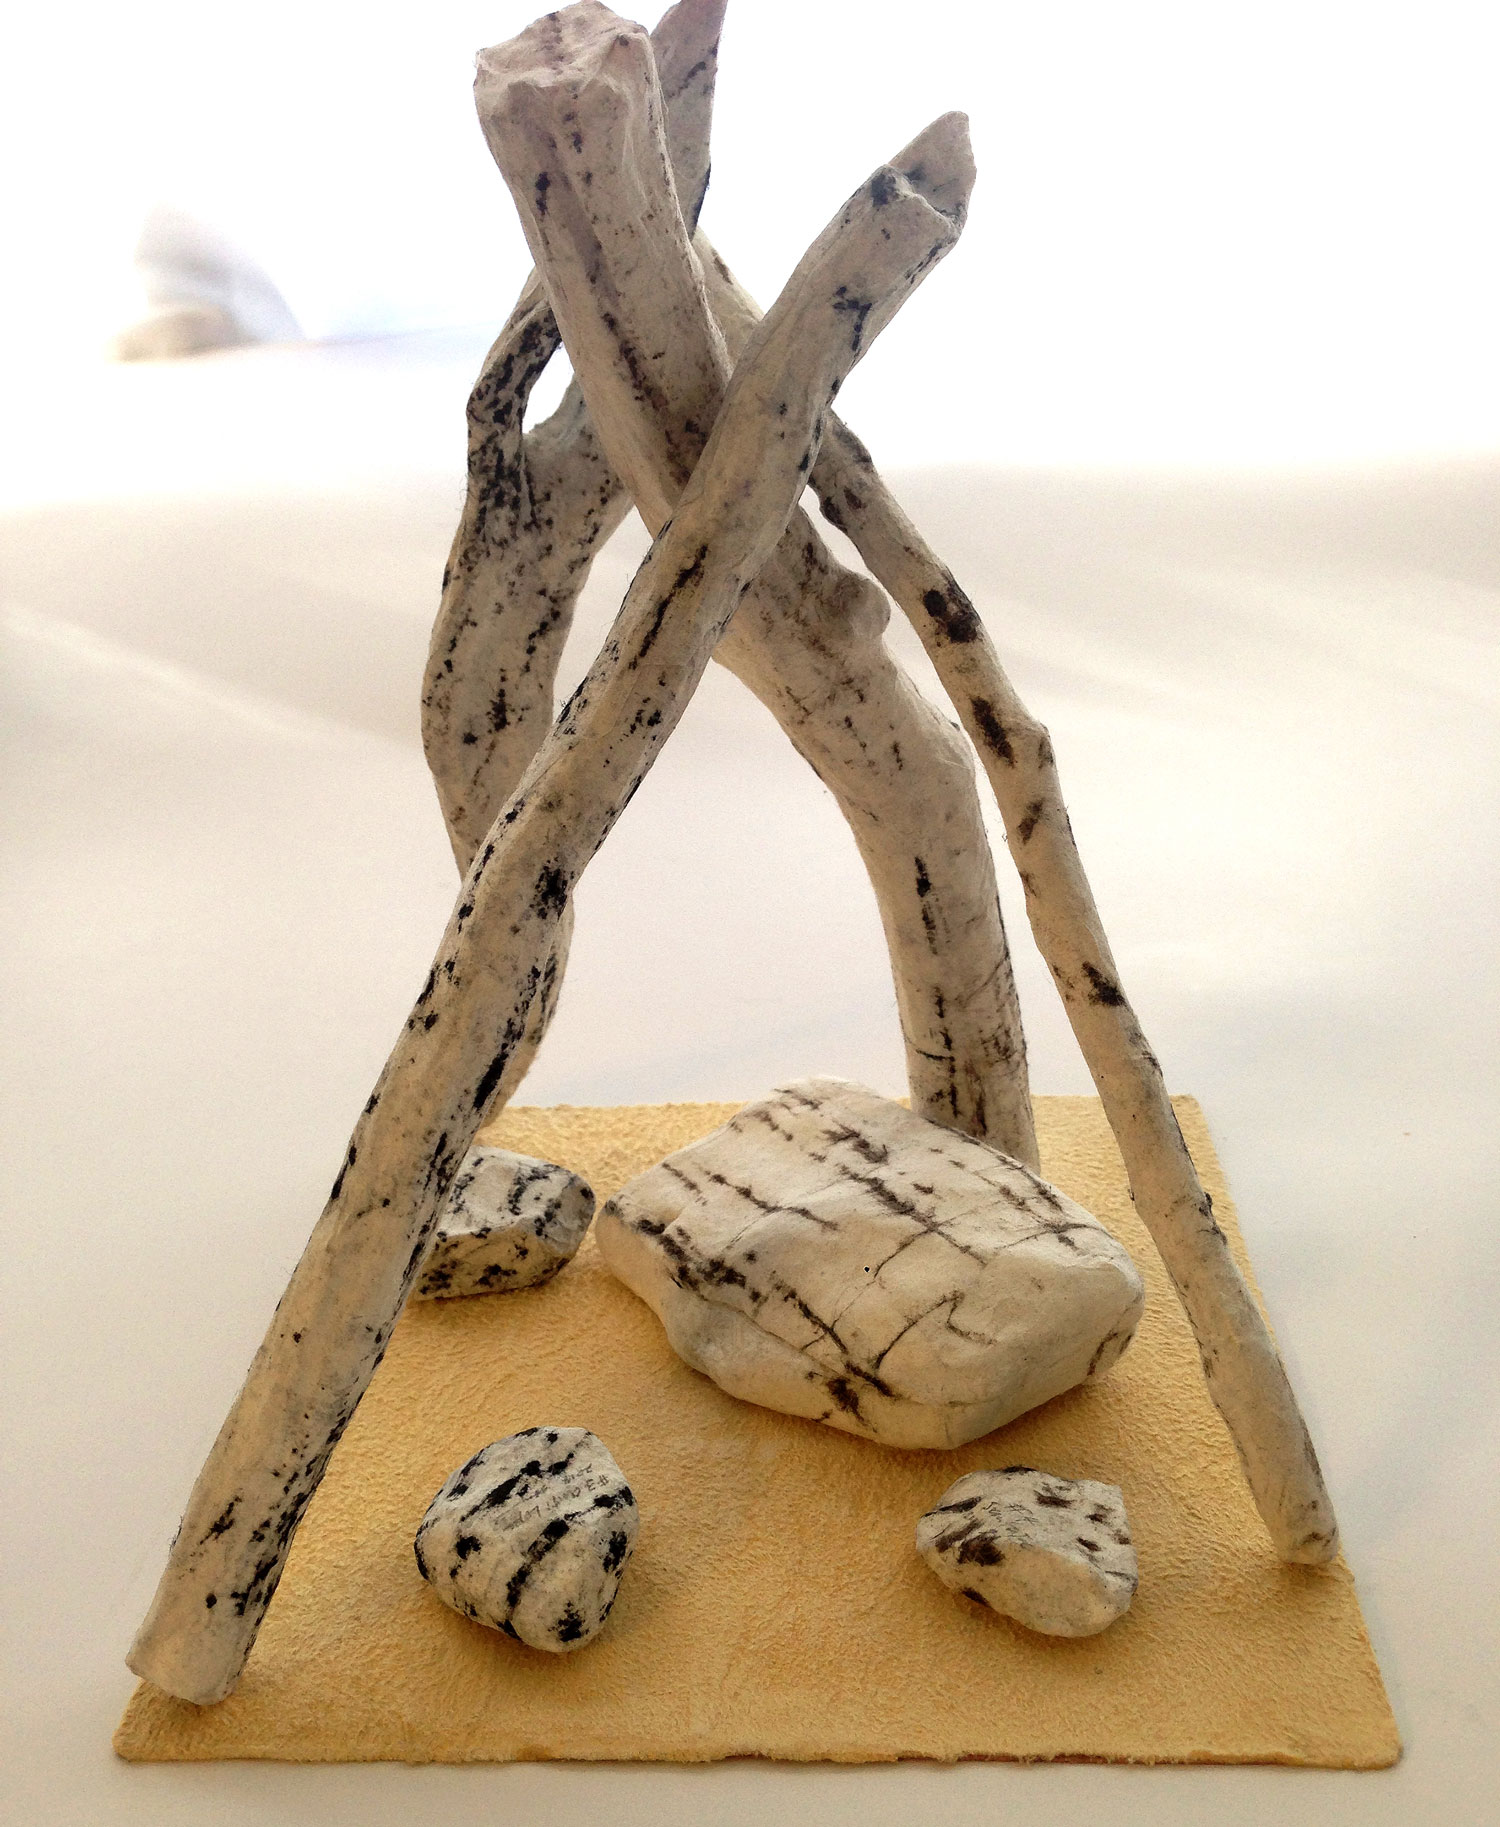 "Arizona Dream #1   (assembled)     2014  Tree branches, stones, charcoal, washi paper, copper, tanned leather   5.5"" x 5.5 x 6.5"""